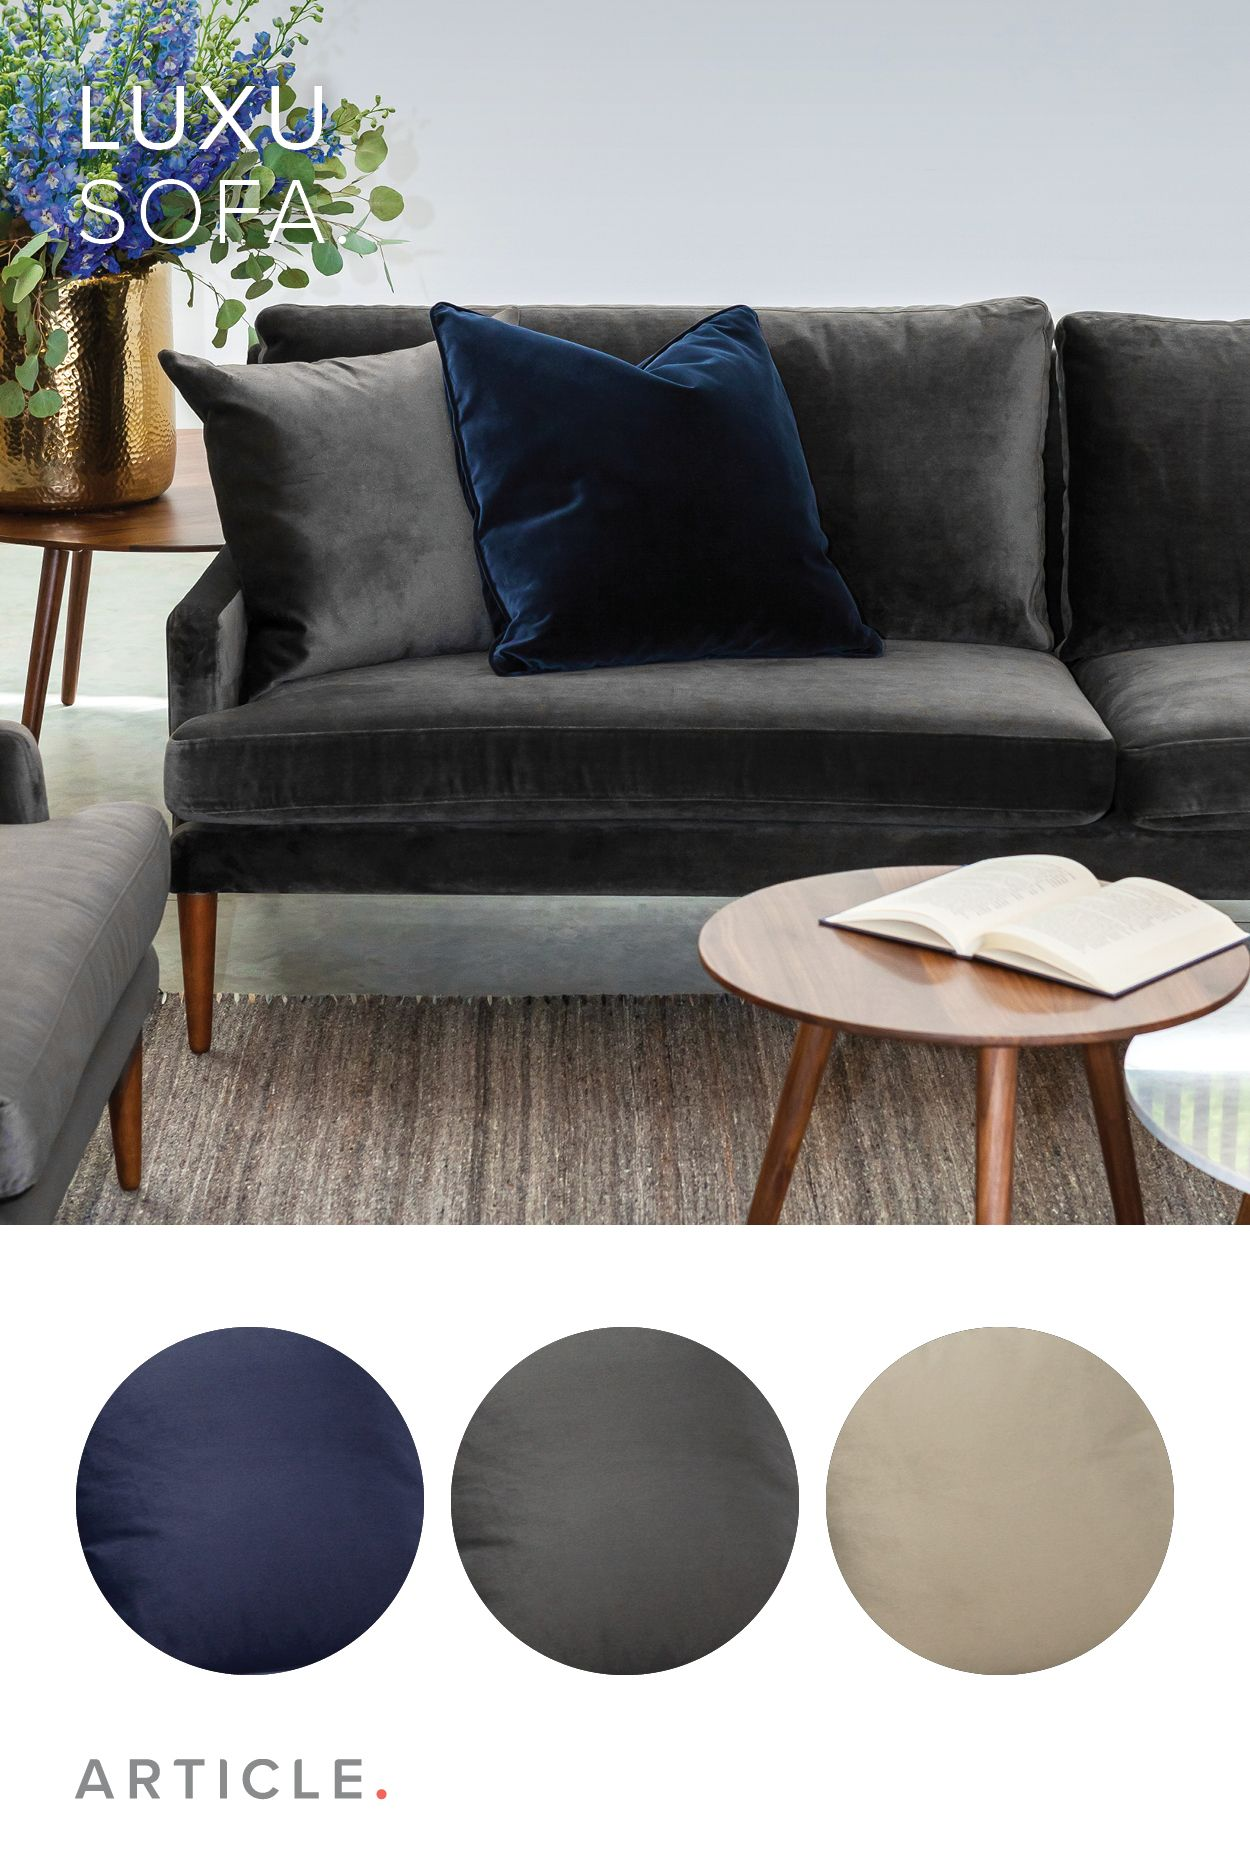 An Extra Deep Seat And Scattered Cushions Give The Luxu Sofa An Over The Top Cozy Feel Deep Sectional Sofa Living Room Sofa Cushions For Grey Sofa